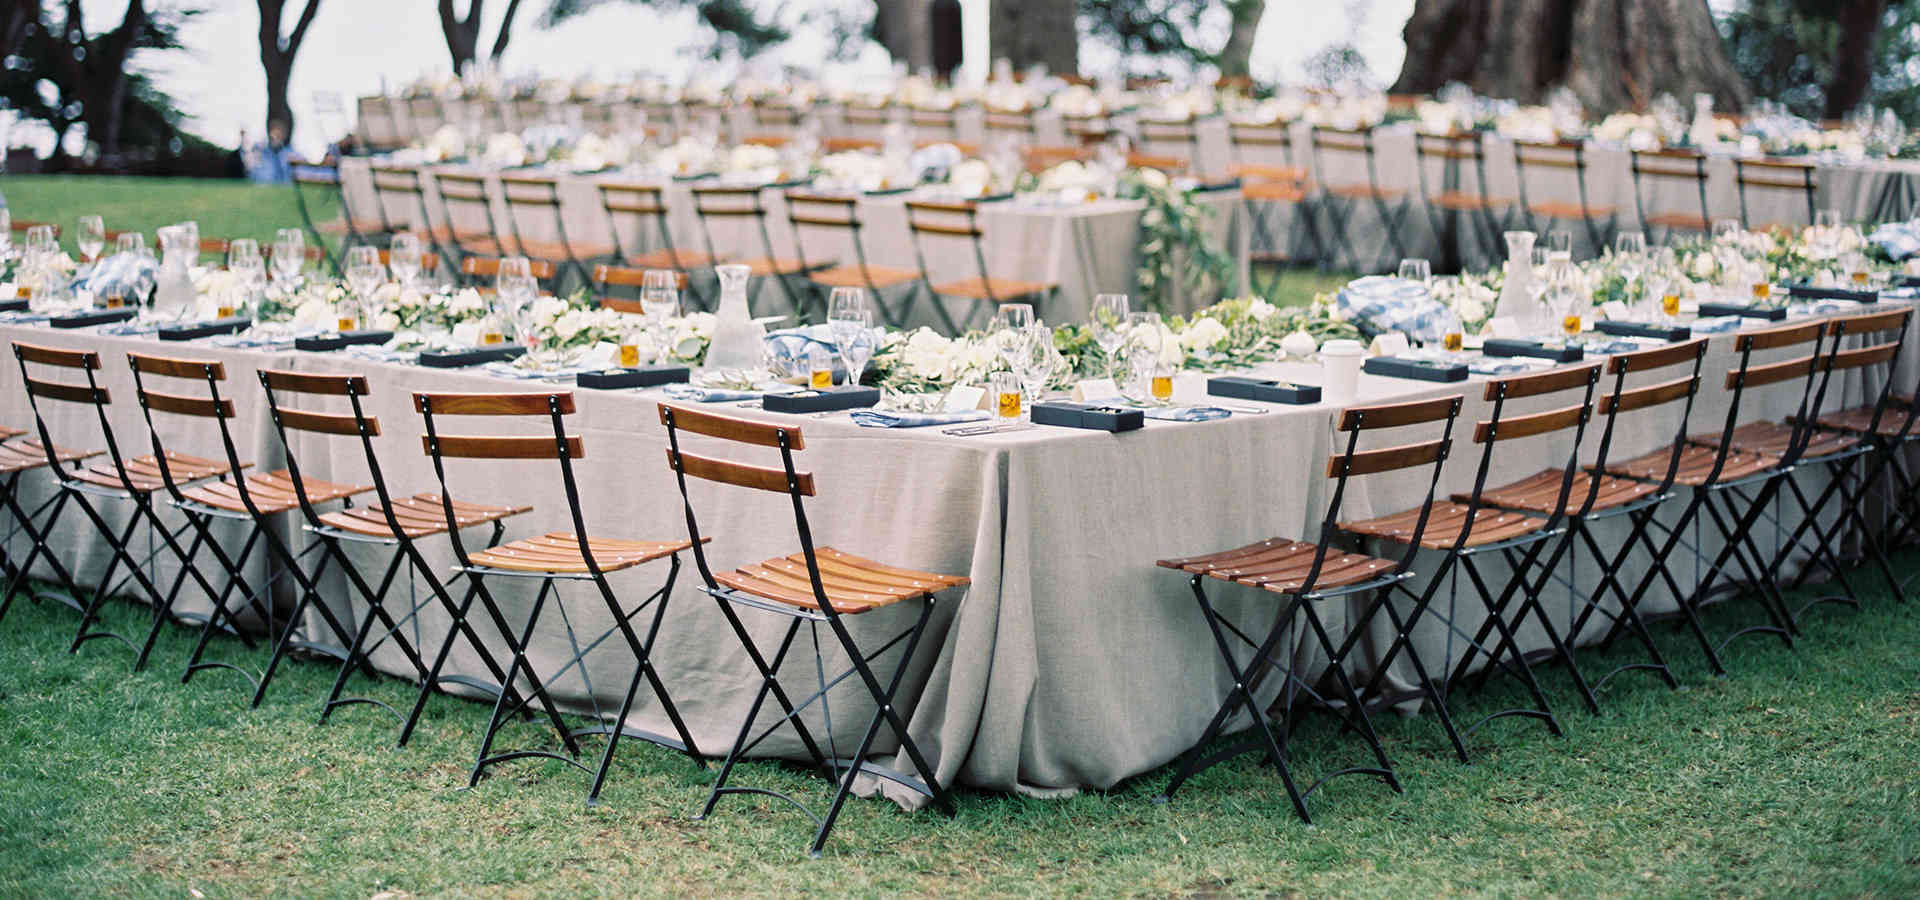 Banquet Rentals in the Monterey Peninsula